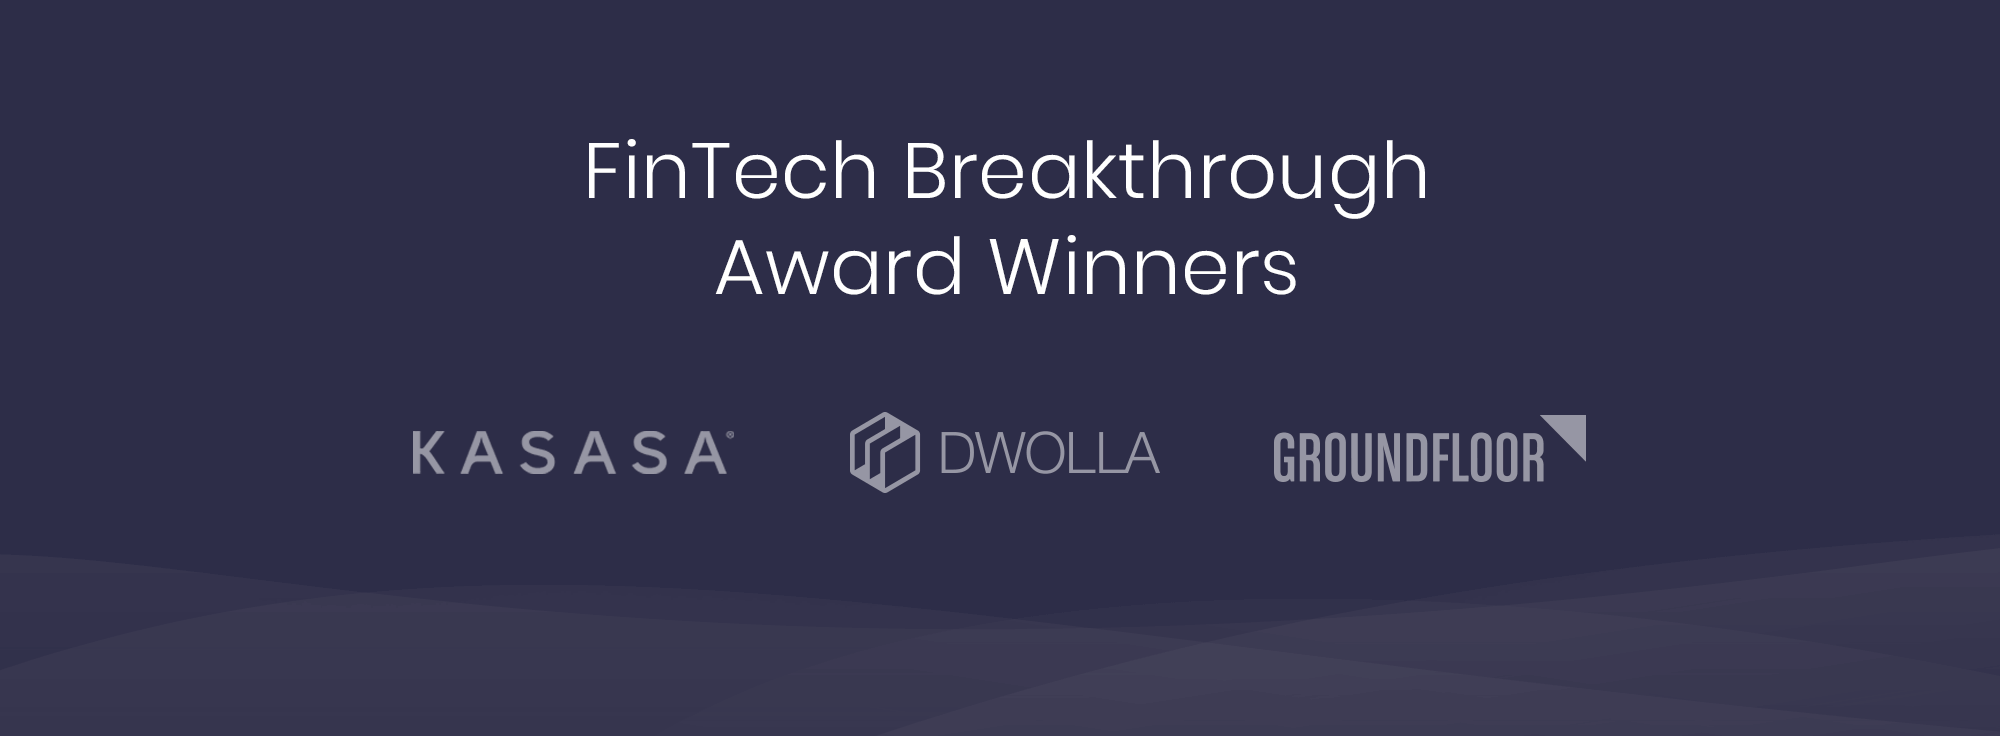 FinTech breakthrough award featured image